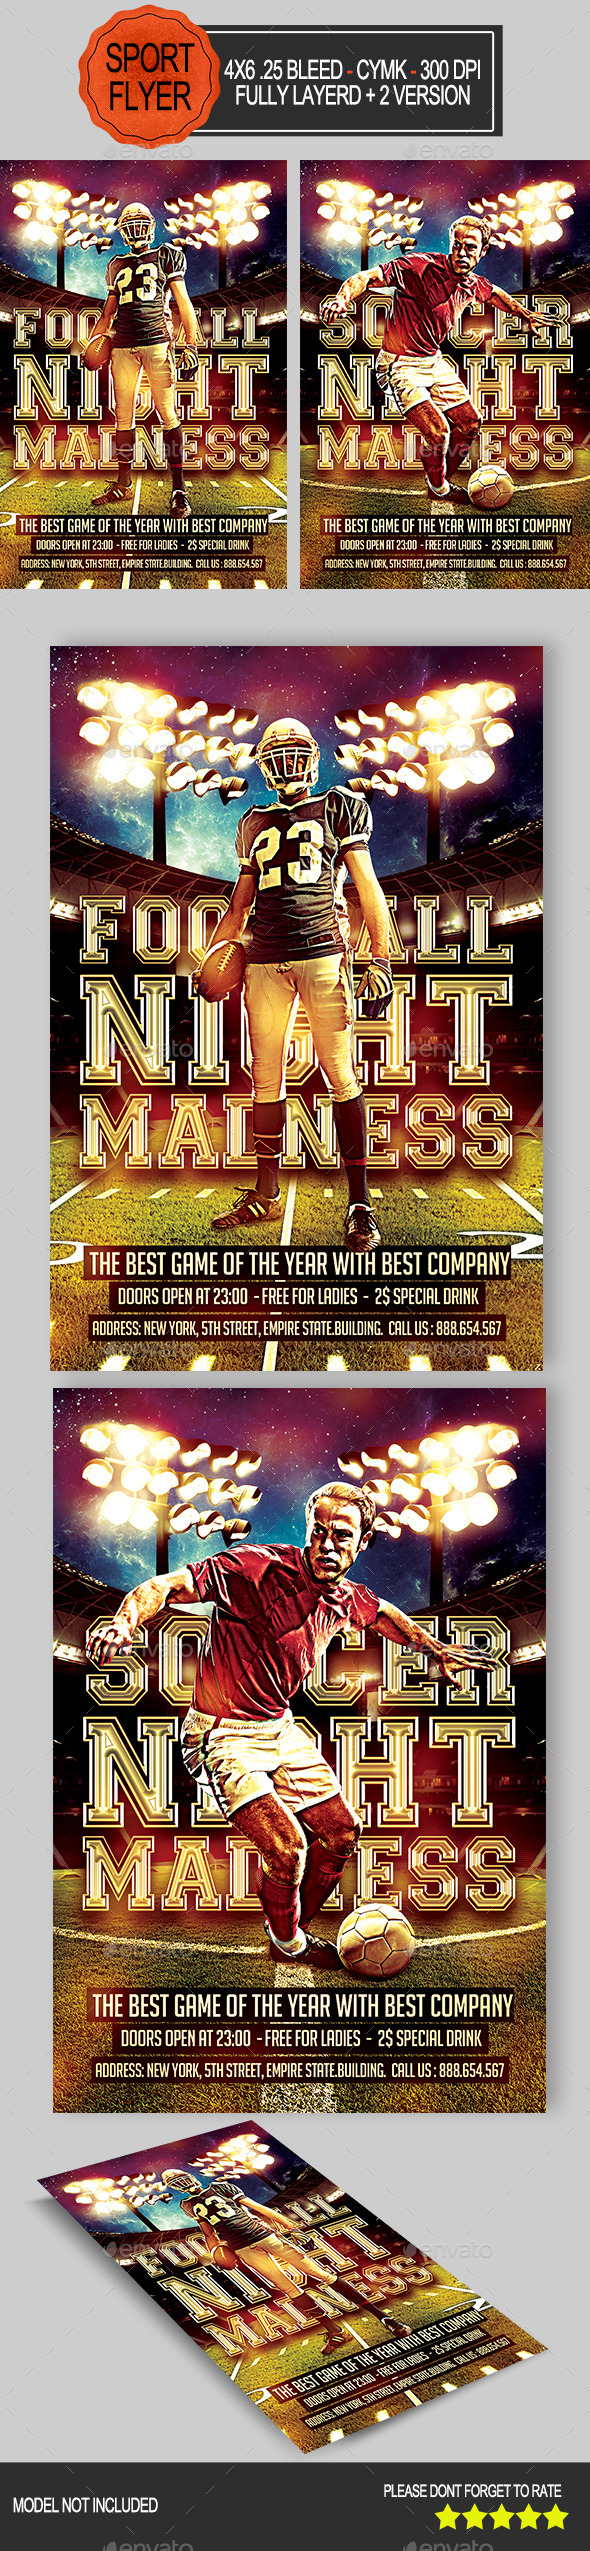 GraphicRiver Football and Soccer Night Flyer 8876441